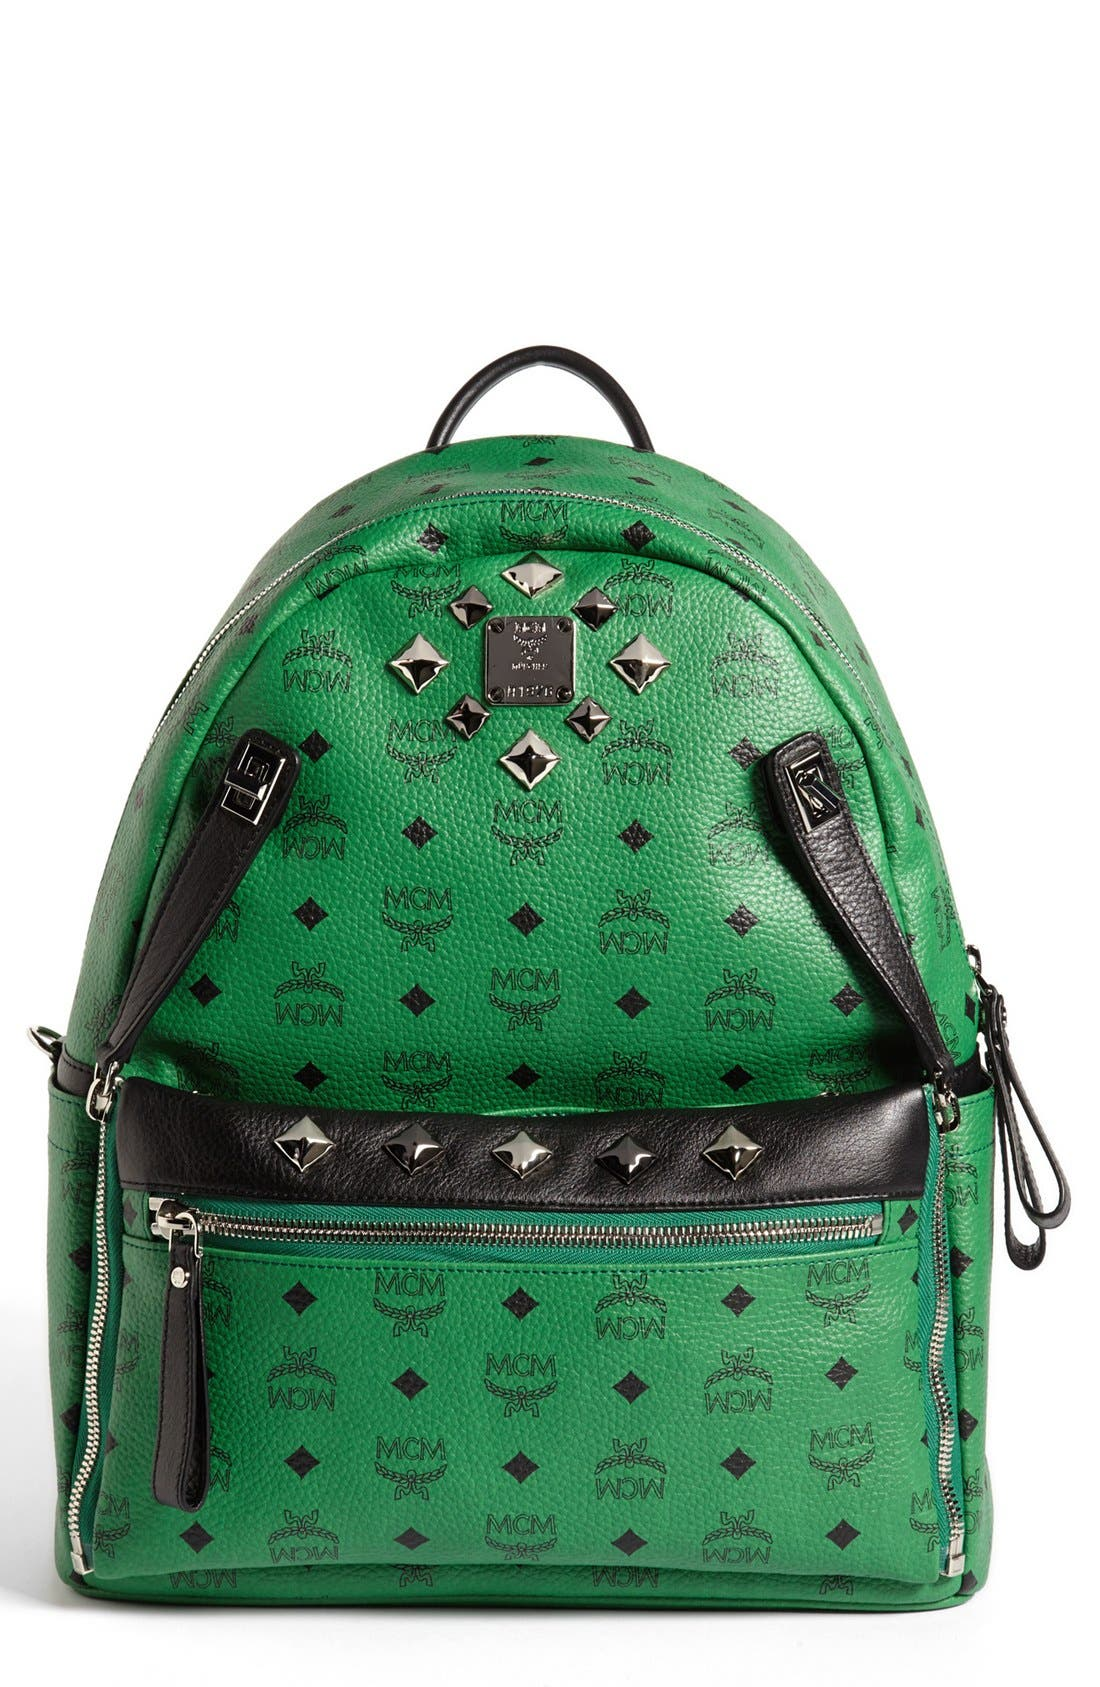 Main Image - MCM 'Studded - Medium' Coated Canvas Backpack